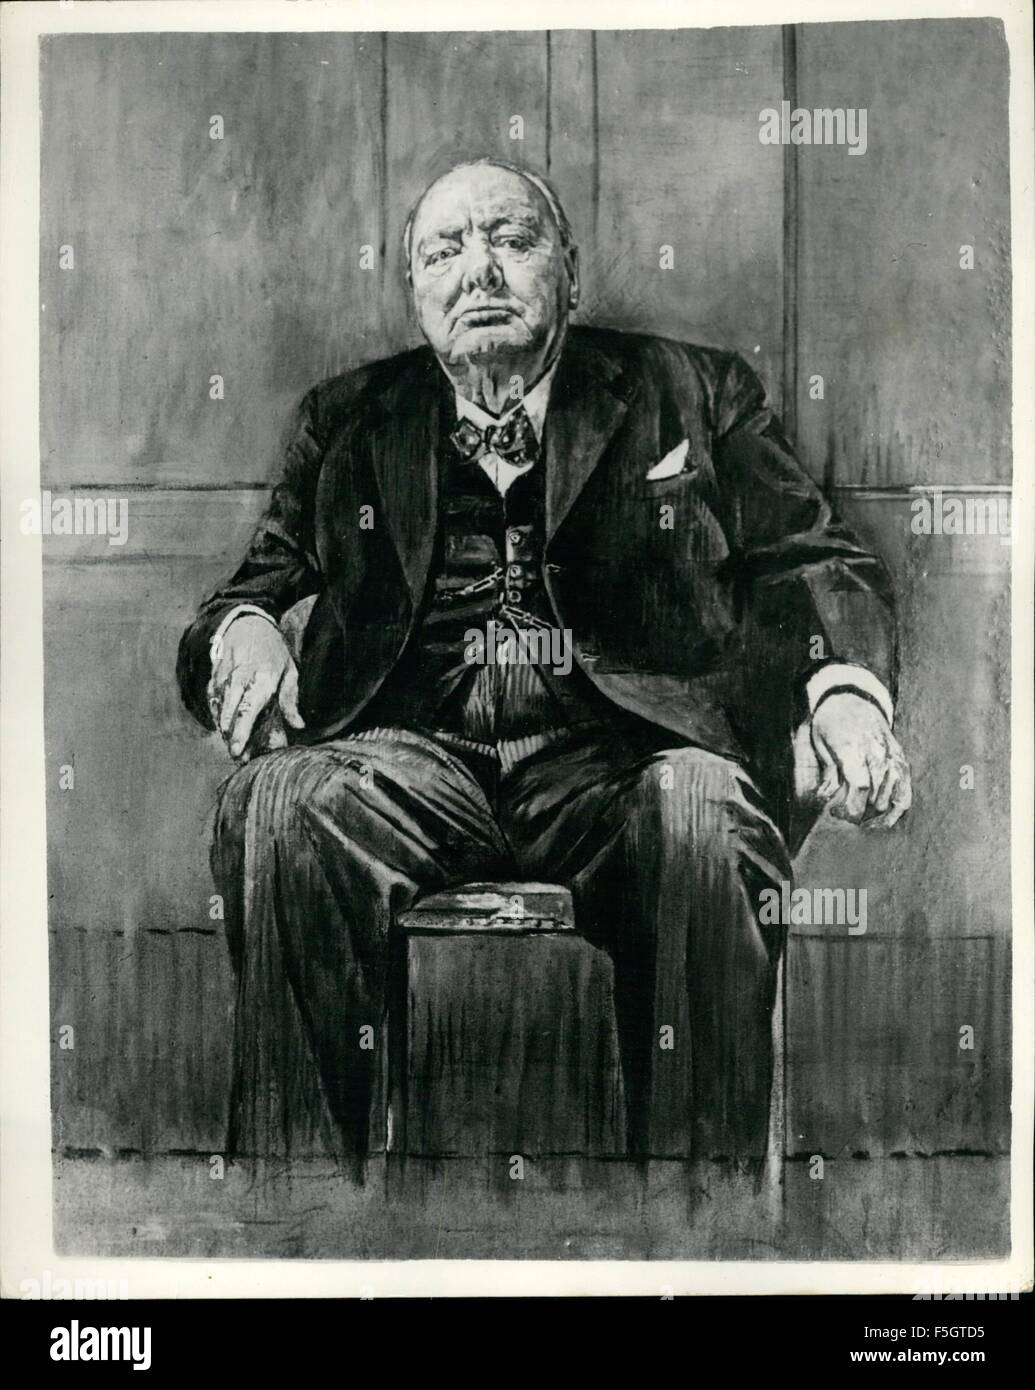 Graham Sutherland Winston Churchill : graham, sutherland, winston, churchill, Winston, Churchill, Graham, Sutherland, Resolution, Stock, Photography, Images, Alamy